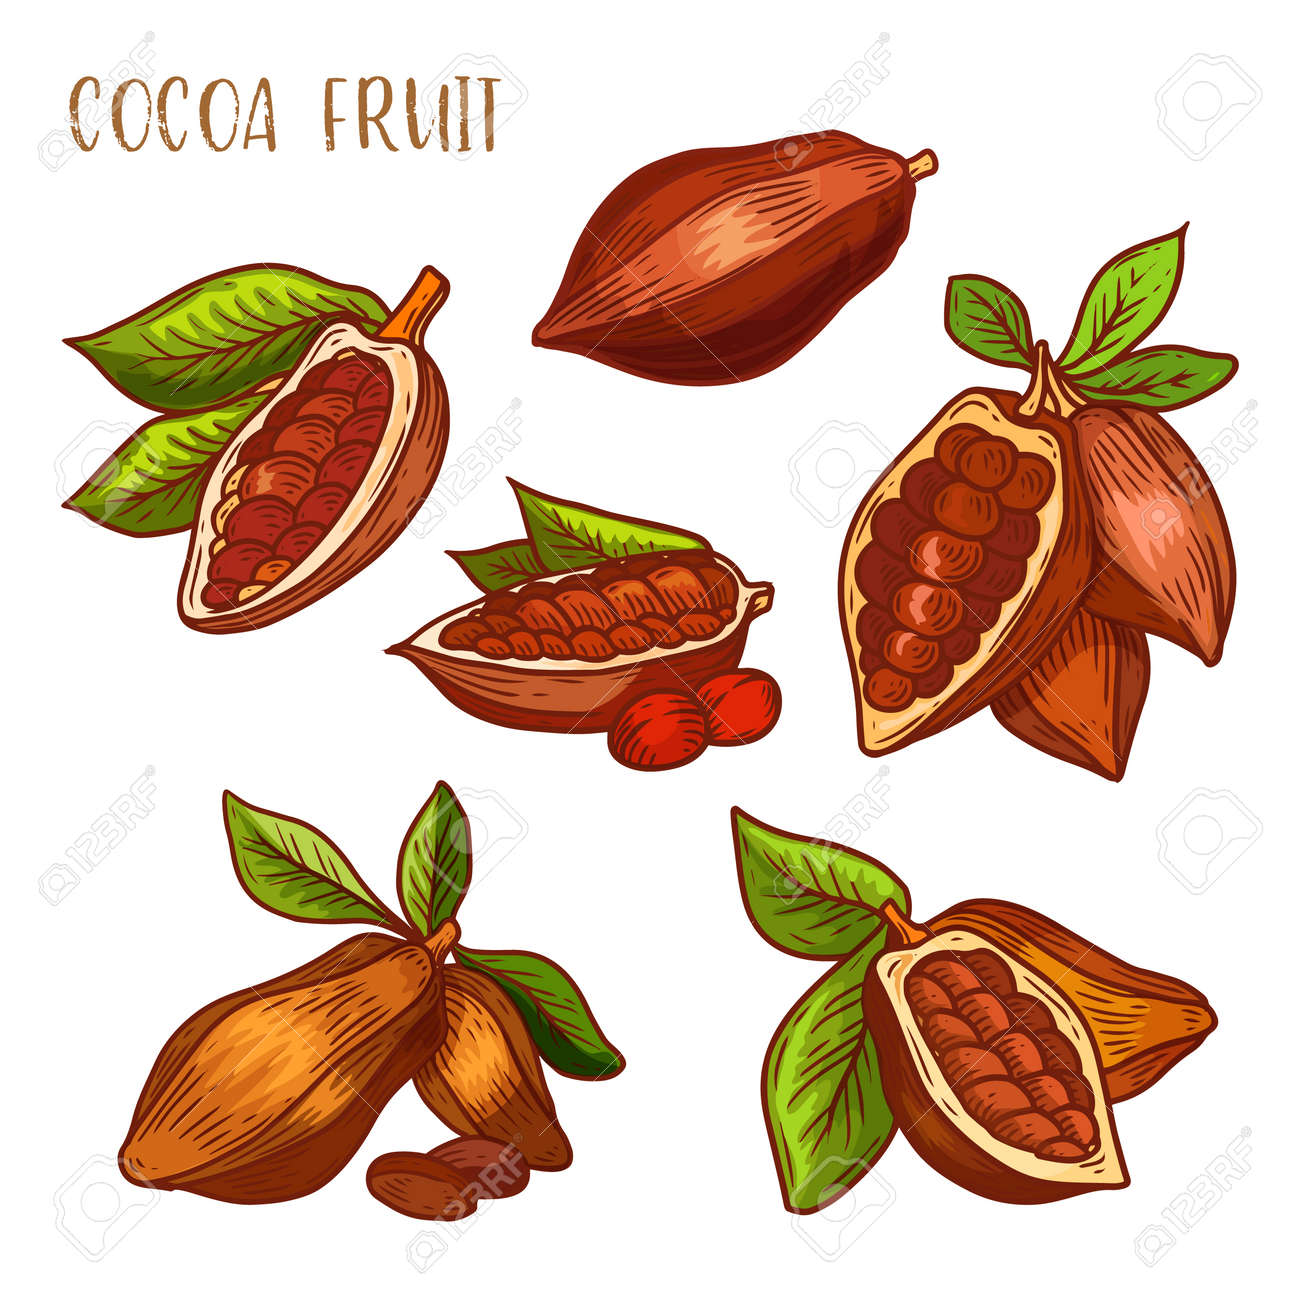 Cocoa beans, cacao pods, chocolate ingredients, vector isolated icons. Natural cocoa beans and cacao pods, whole and peeled with seeds, chocolate or sweet butter elements, sketch line - 145633529